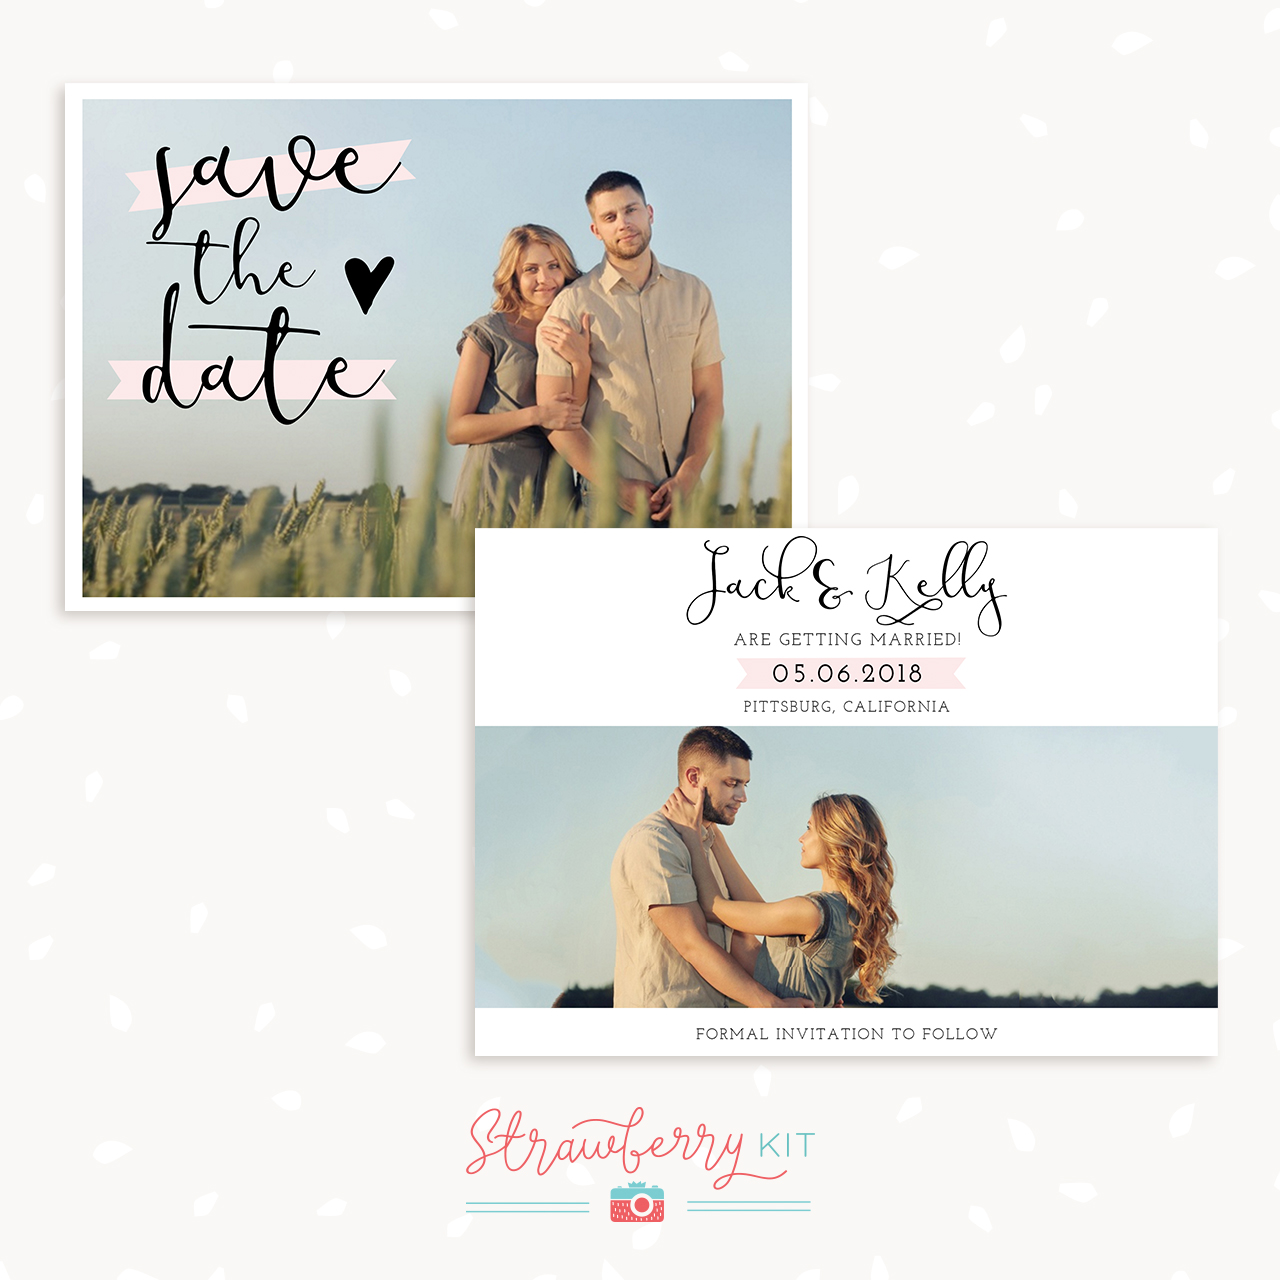 Classic Banner Save the Date Template - Strawberry Kit